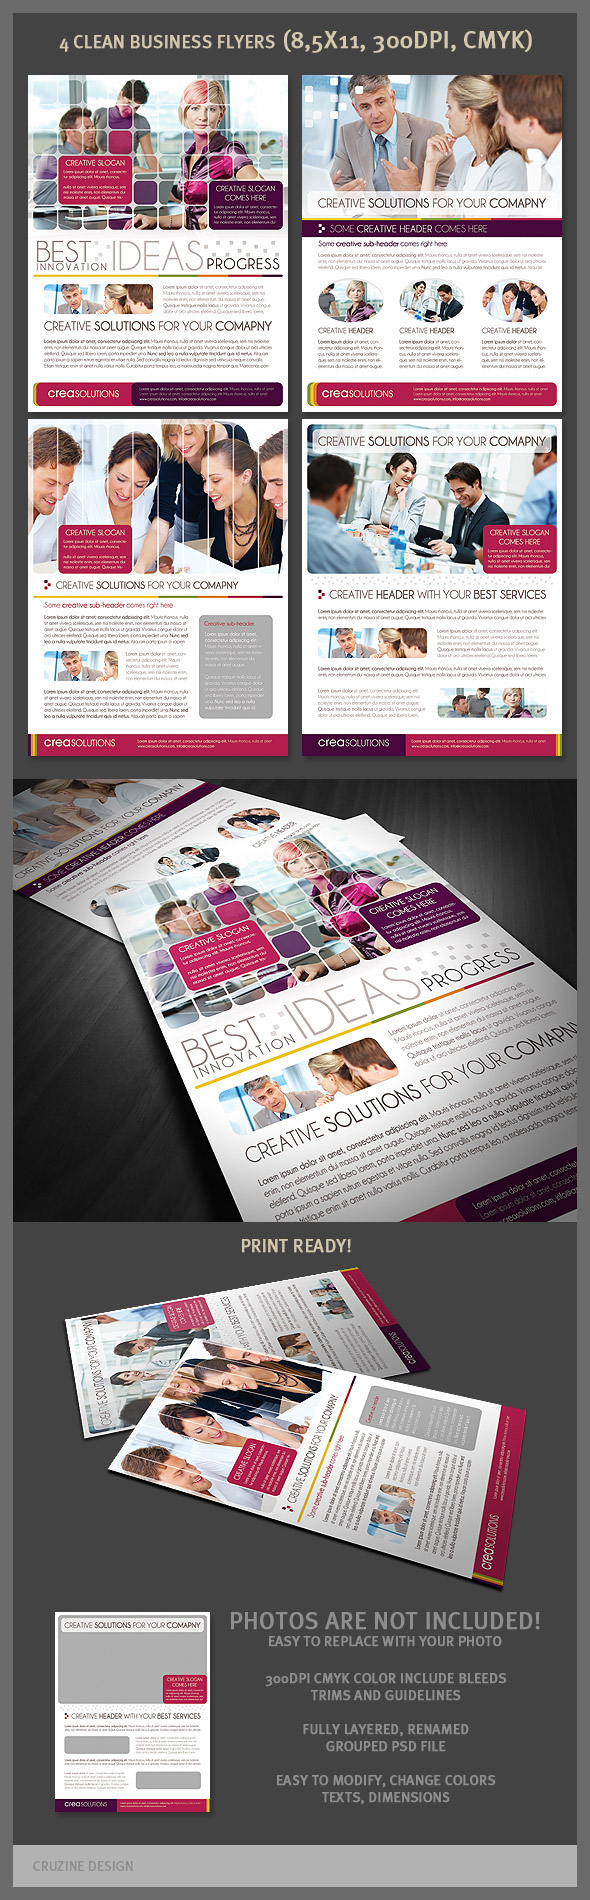 4 Clean Business Flyer Templates by hugoo13